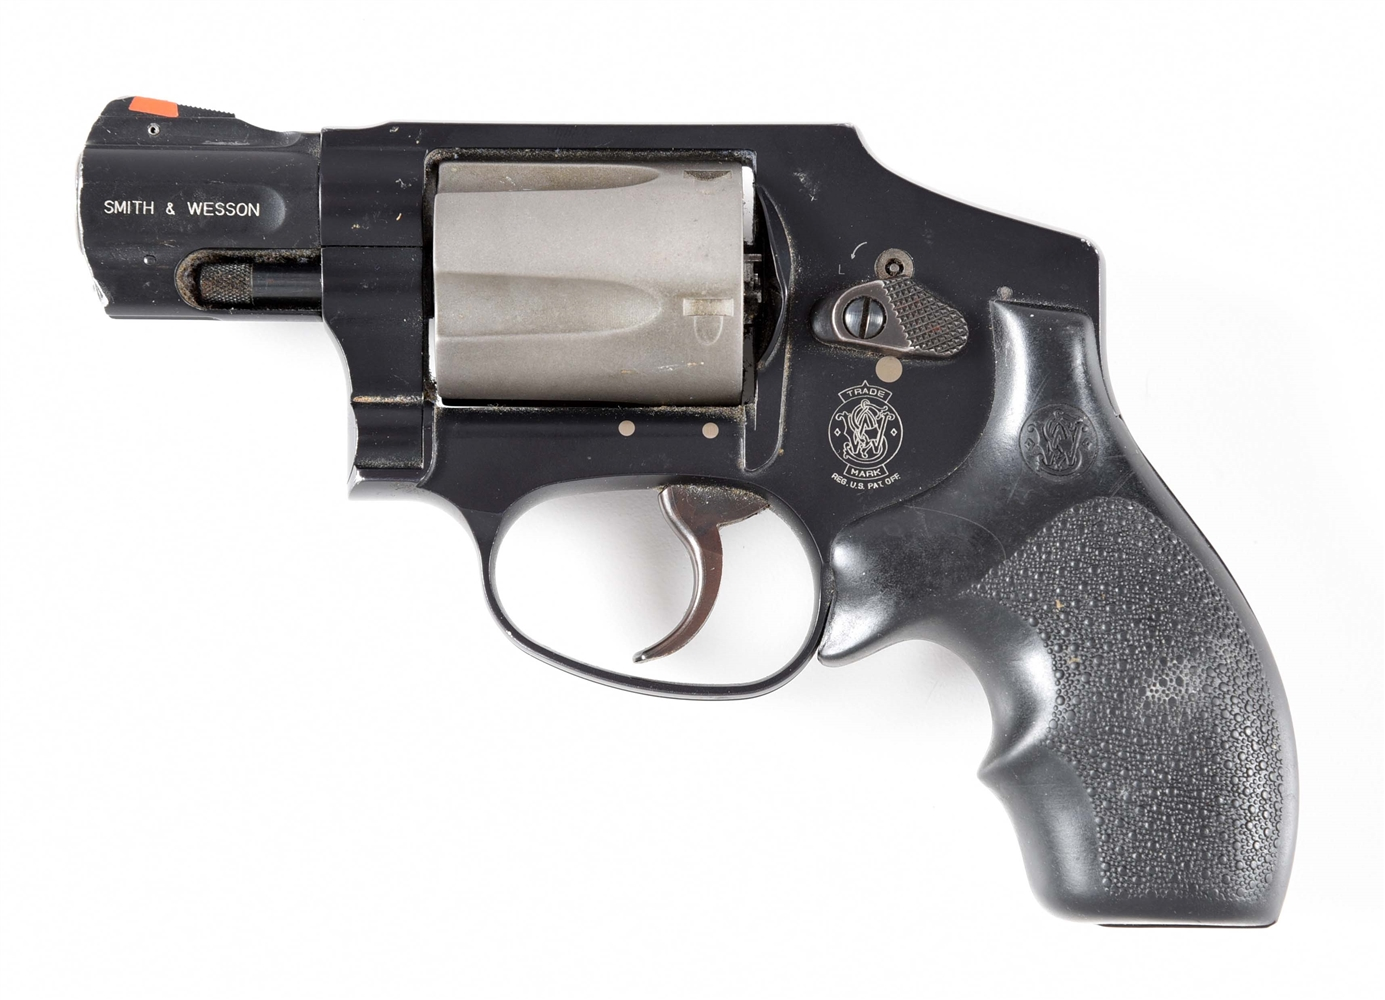 (M) SMITH & WESSON MODEL 342-1 AIRLITE DOUBLE ACTION .38 REVOLVER.